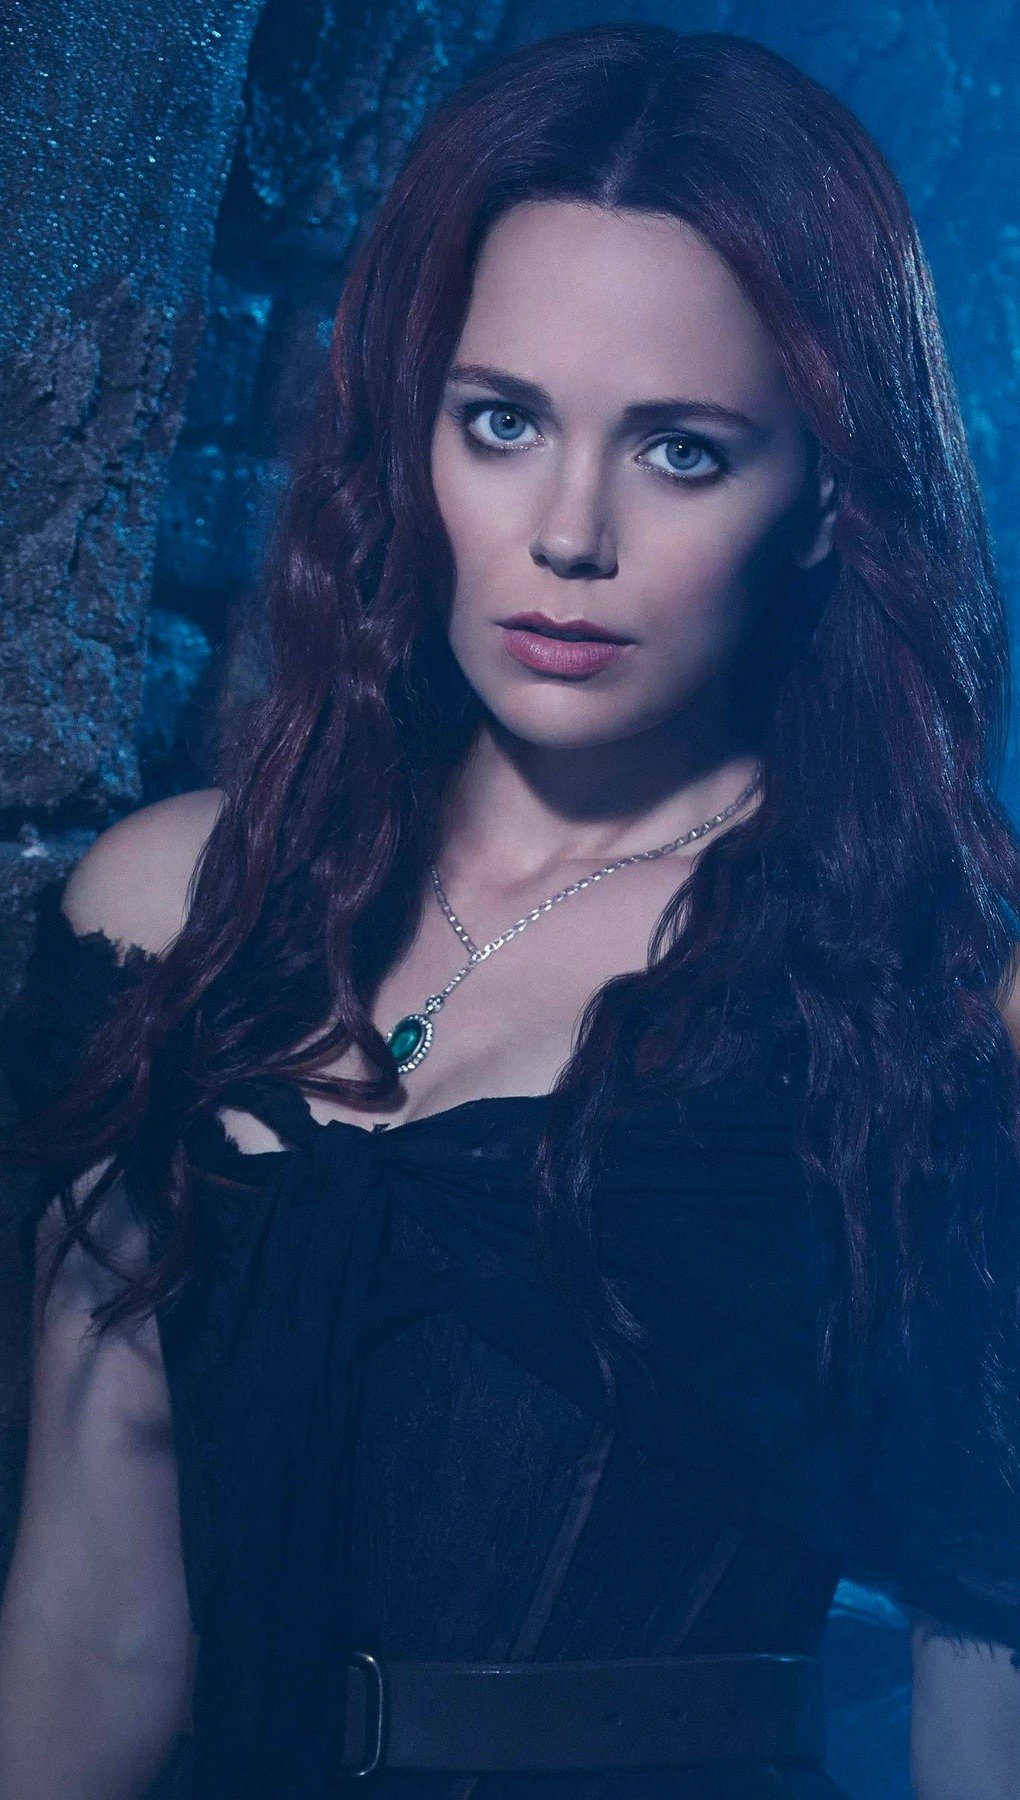 Wallpaper Katia Winter Vertical